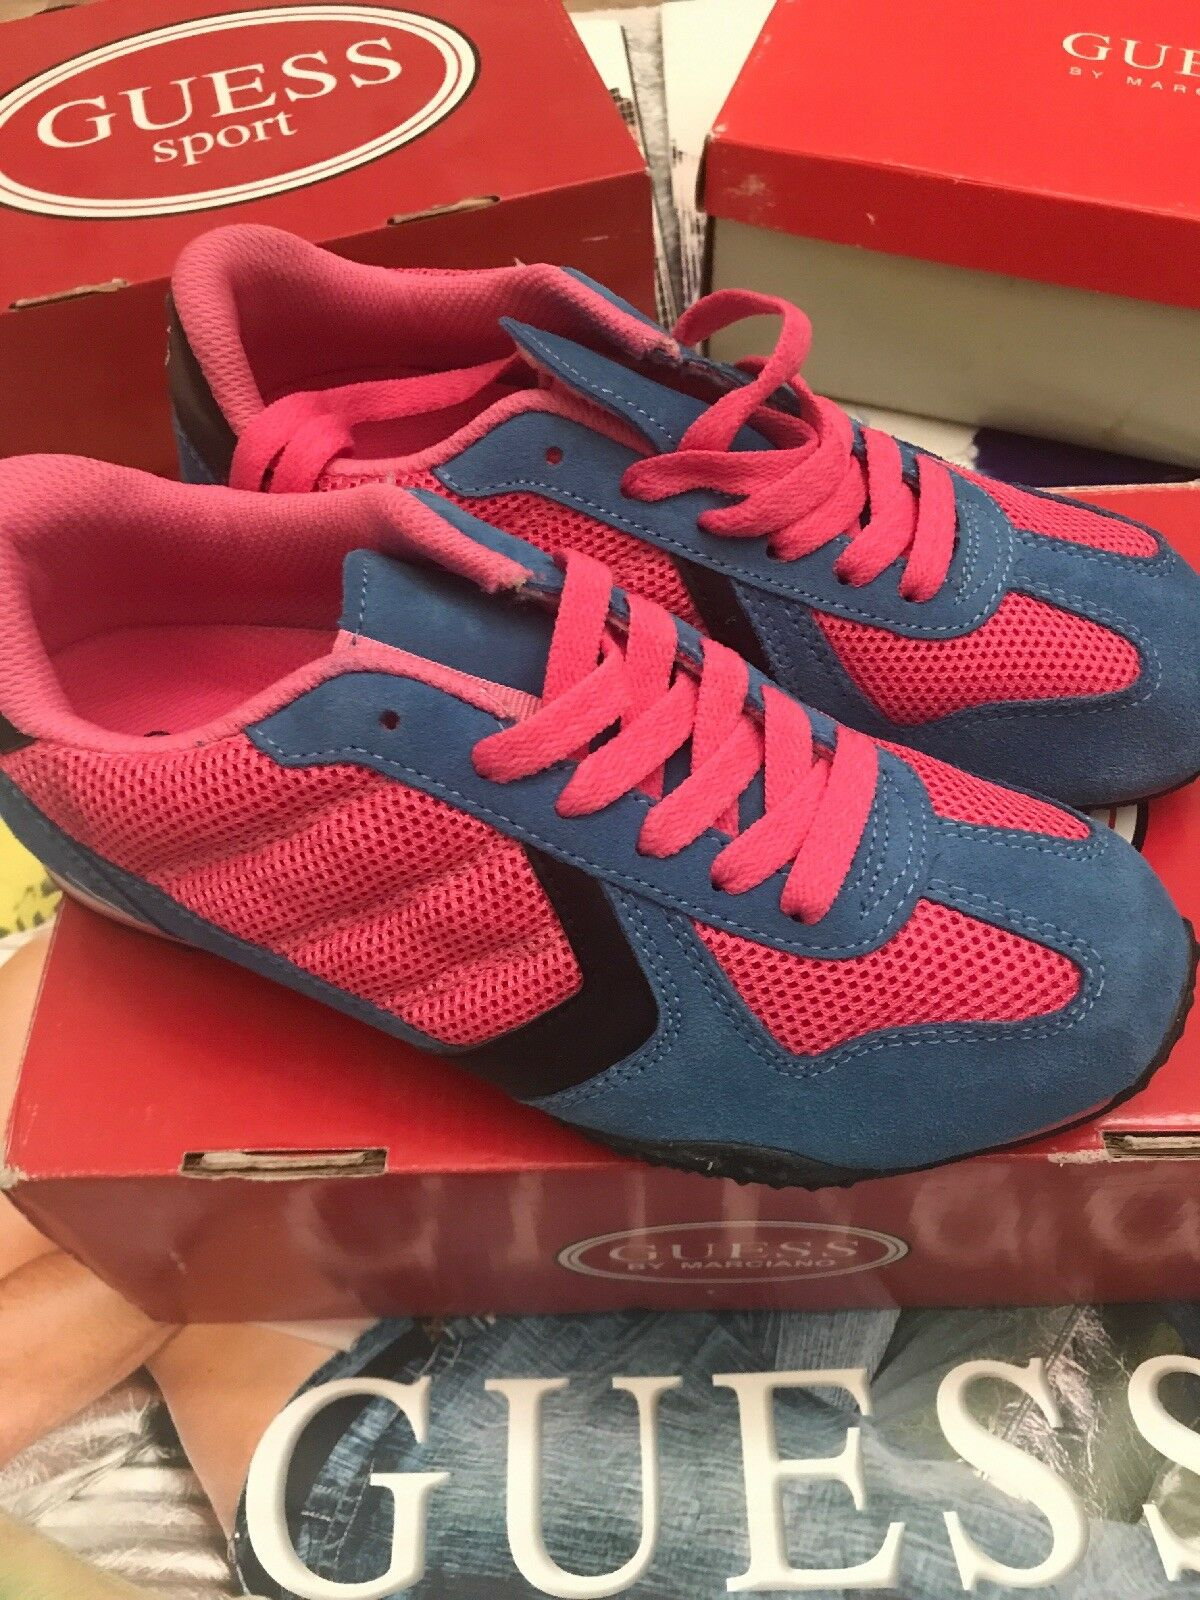 GUESS BY MARCIANO FORWARD SNEAKER-blueE PINK US 5.5 Eur 35.5